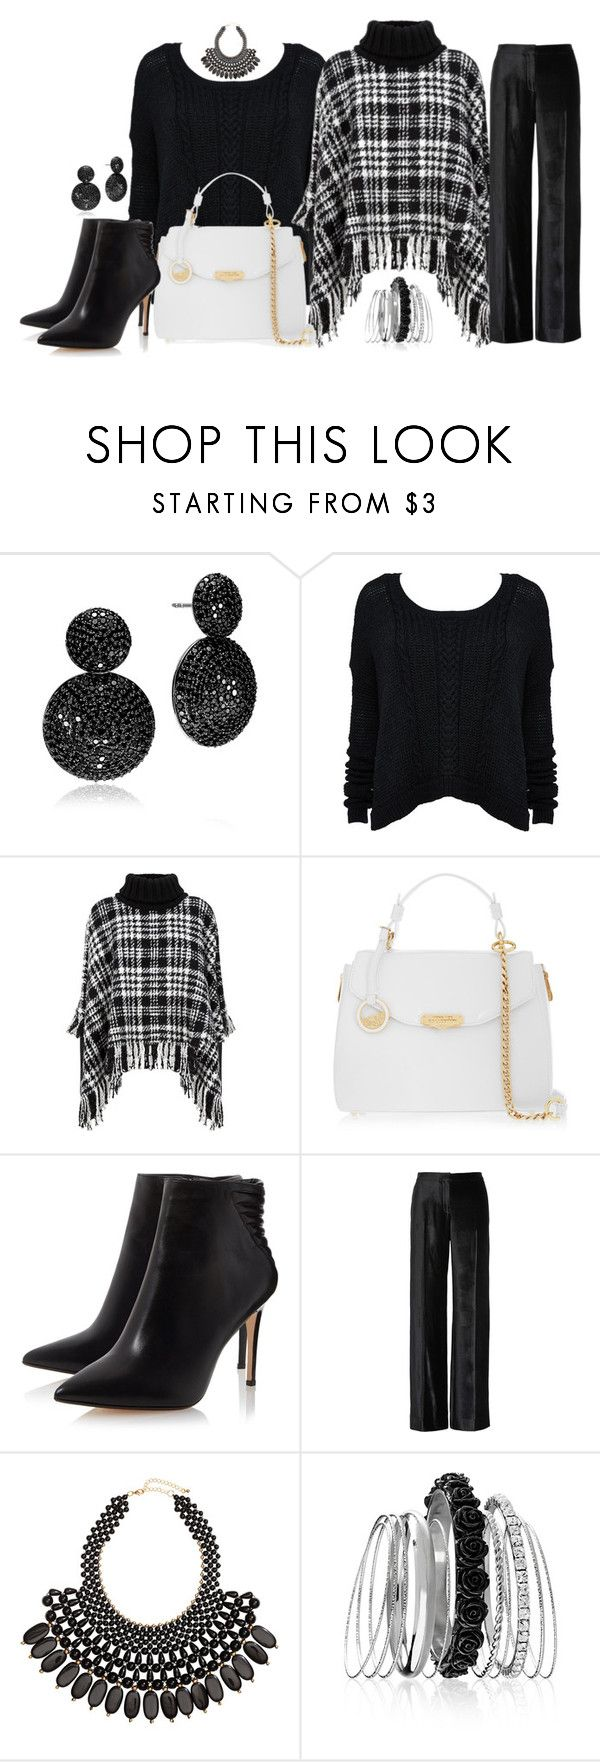 """Boxing Day"" by jakenpink ❤ liked on Polyvore featuring Alice + Olivia, Dolce&Gabbana, Versace, Maiyet, H&M and Avenue"